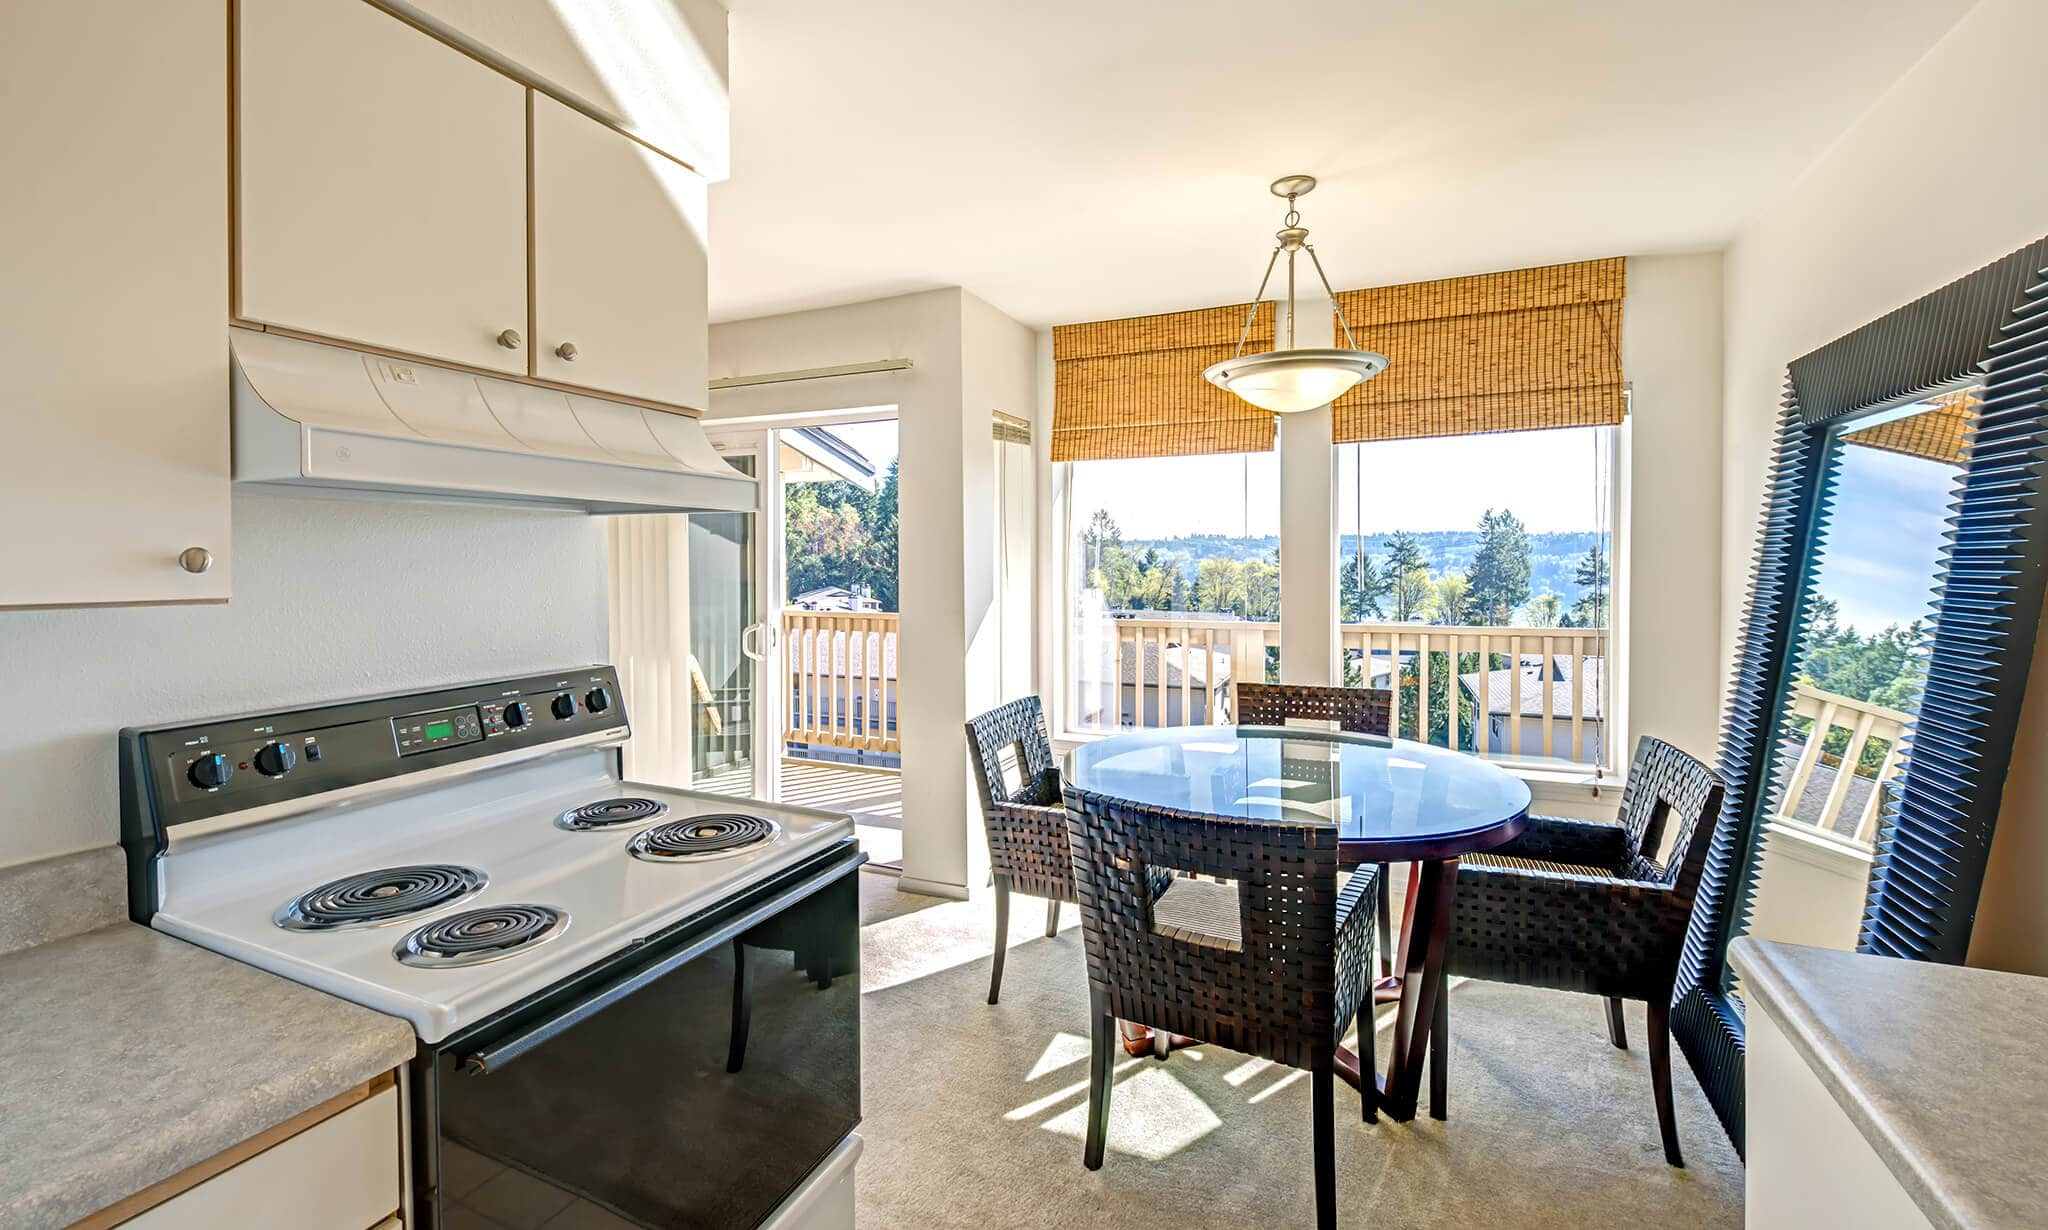 Cliffside Apartments apartments in Gig Harbor WA to rent photo 6